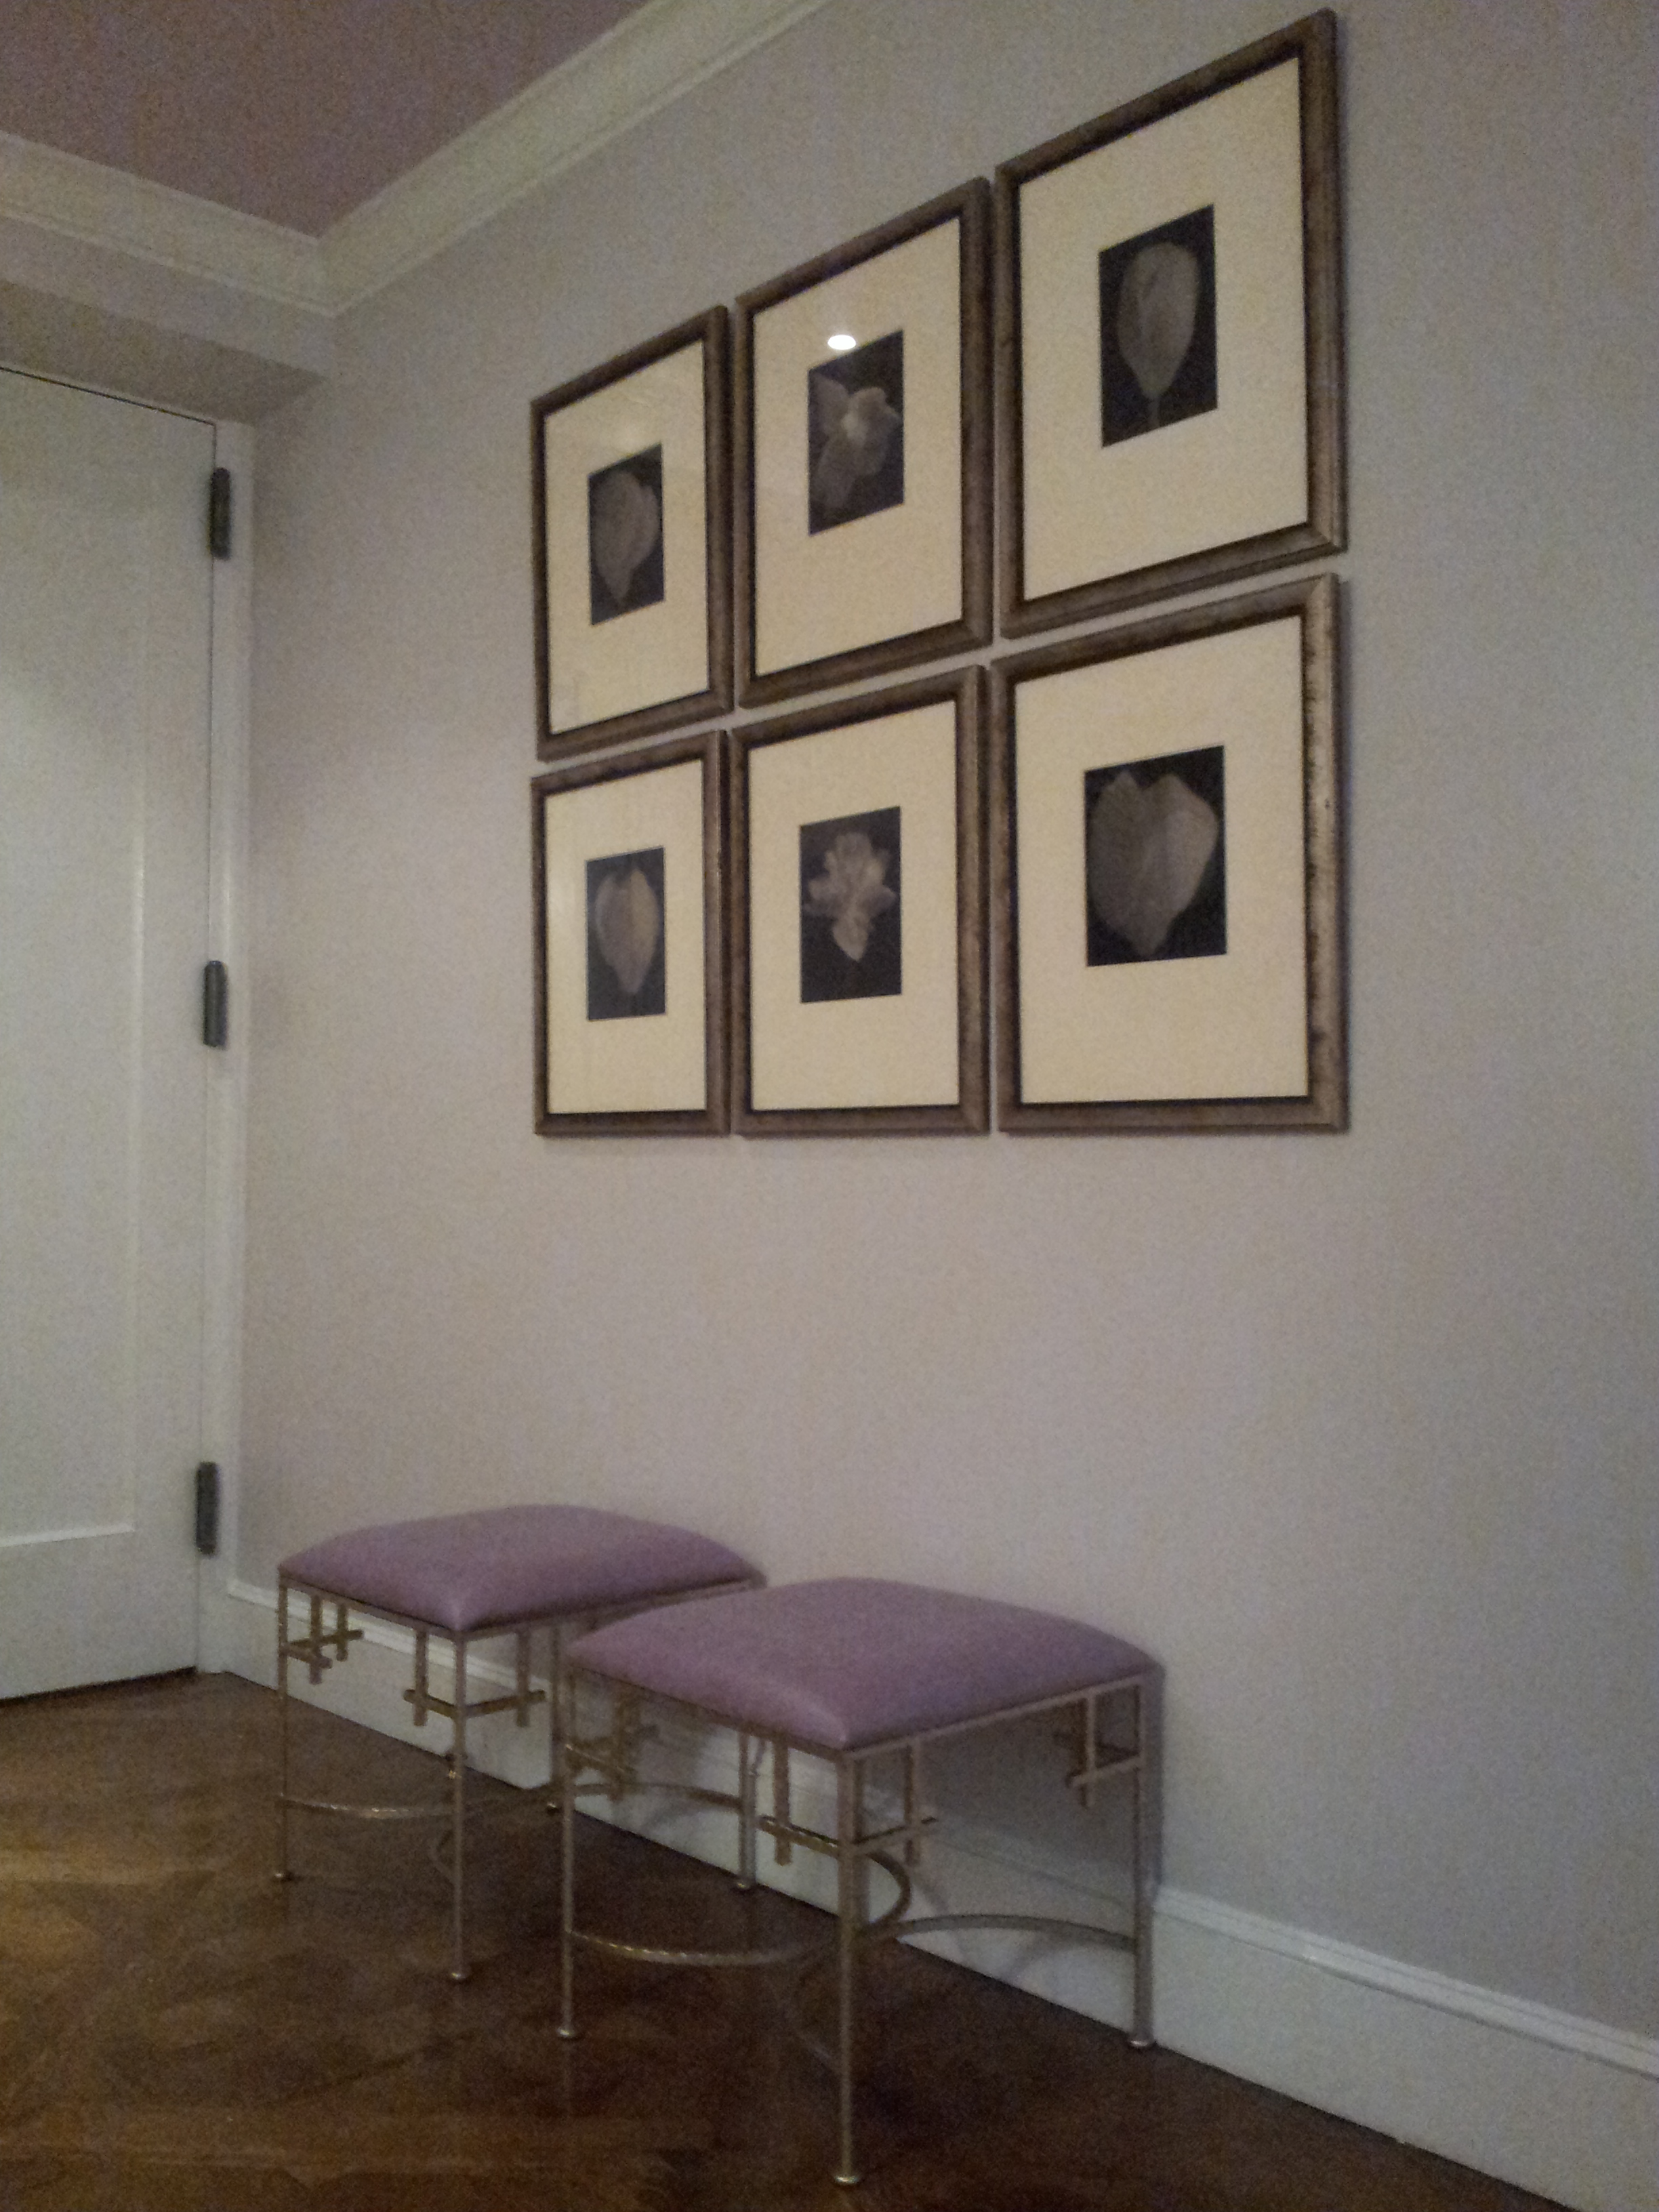 New York City Doctor's office​